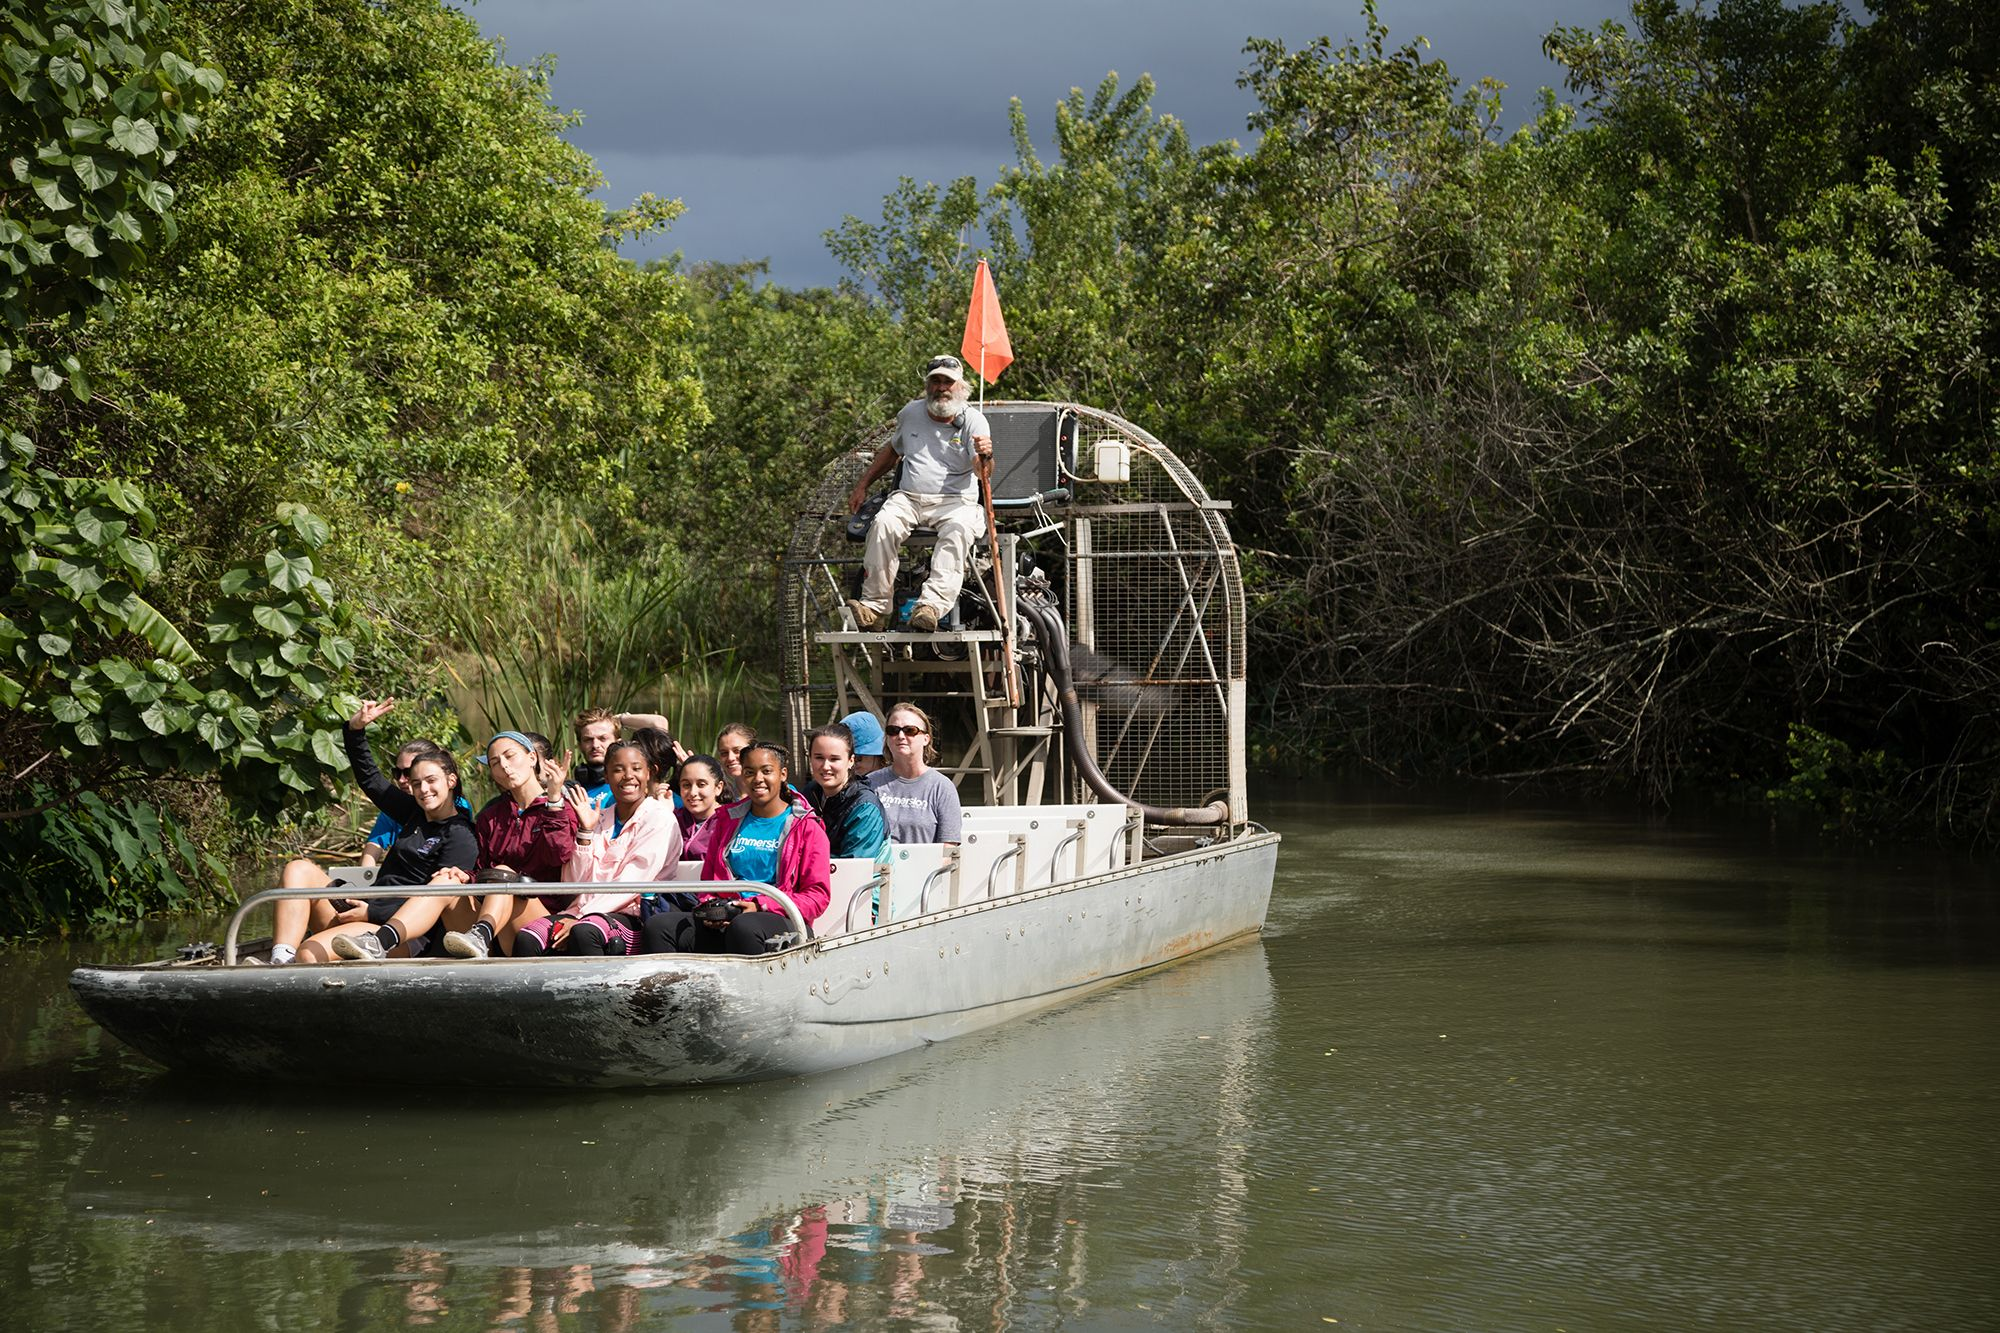 Students ride an airboat on an Immersion experience in the Everglades.